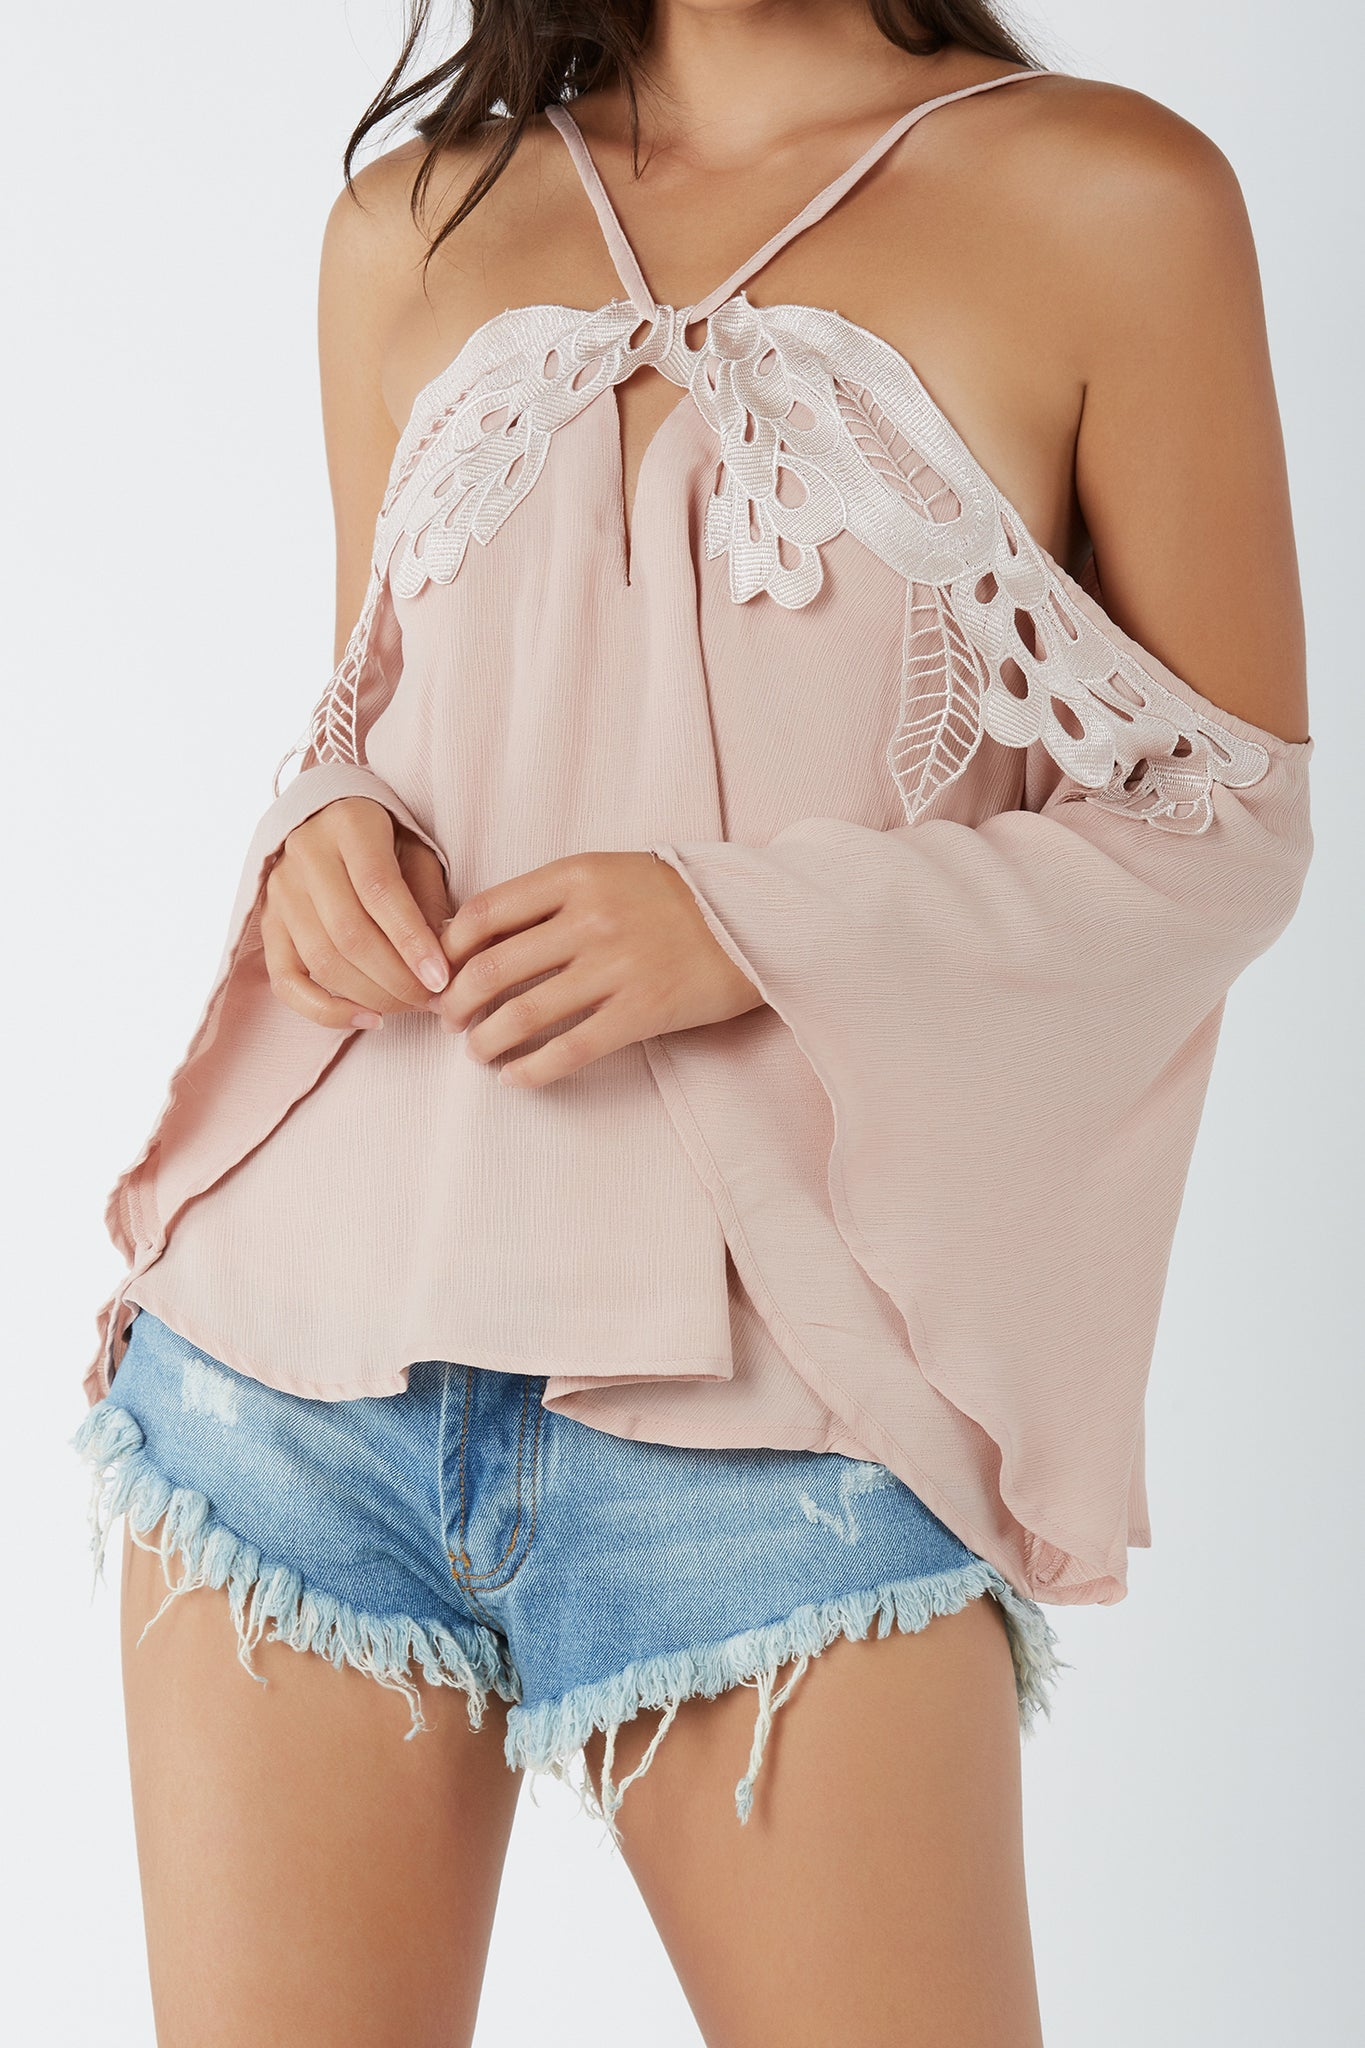 Chic cold shoulder top with bold crochet patch detailing. Halter style straps with drawstring tie finish in back.